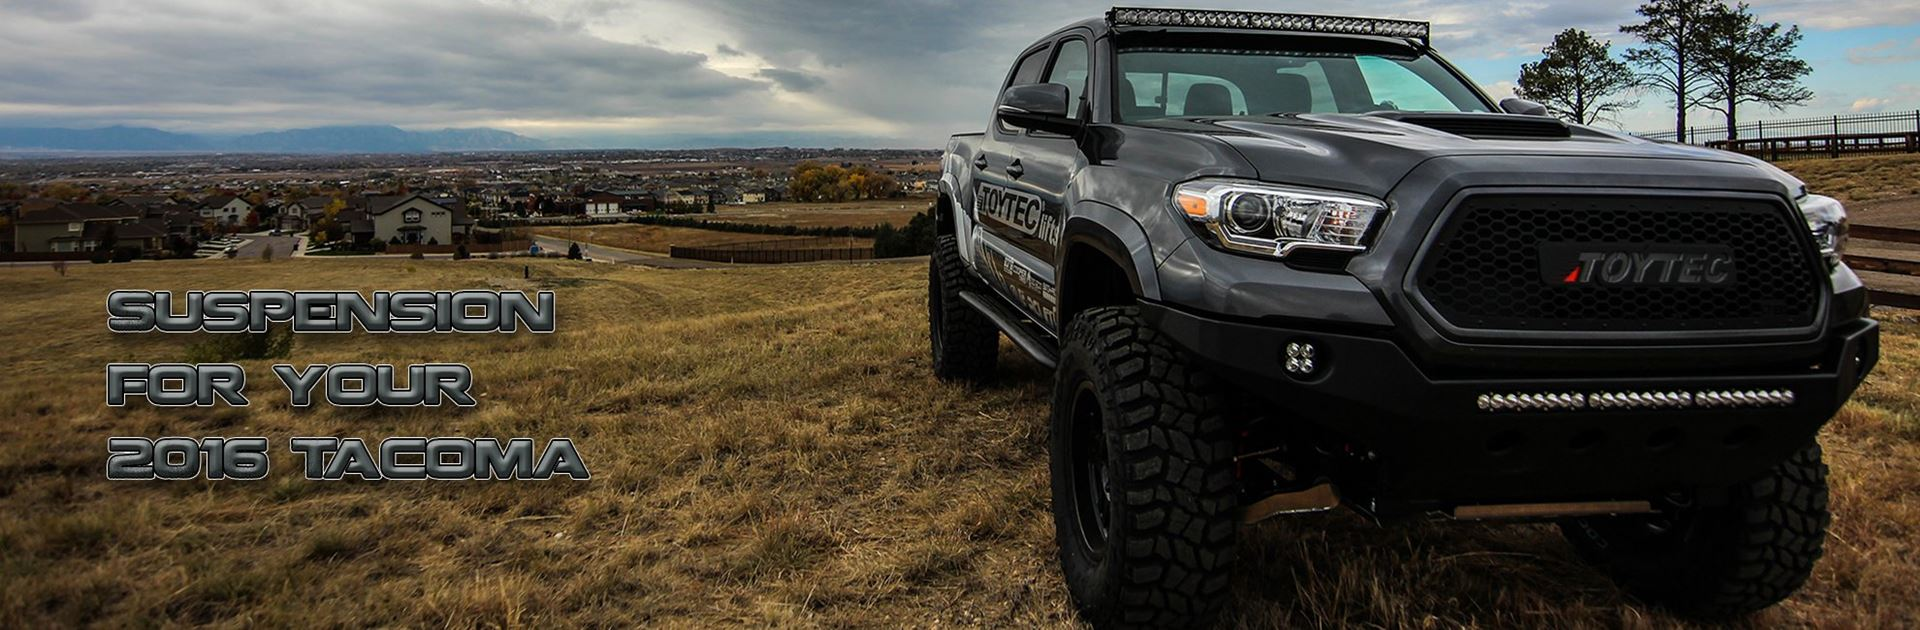 Suspension for your 2016 Tacoma